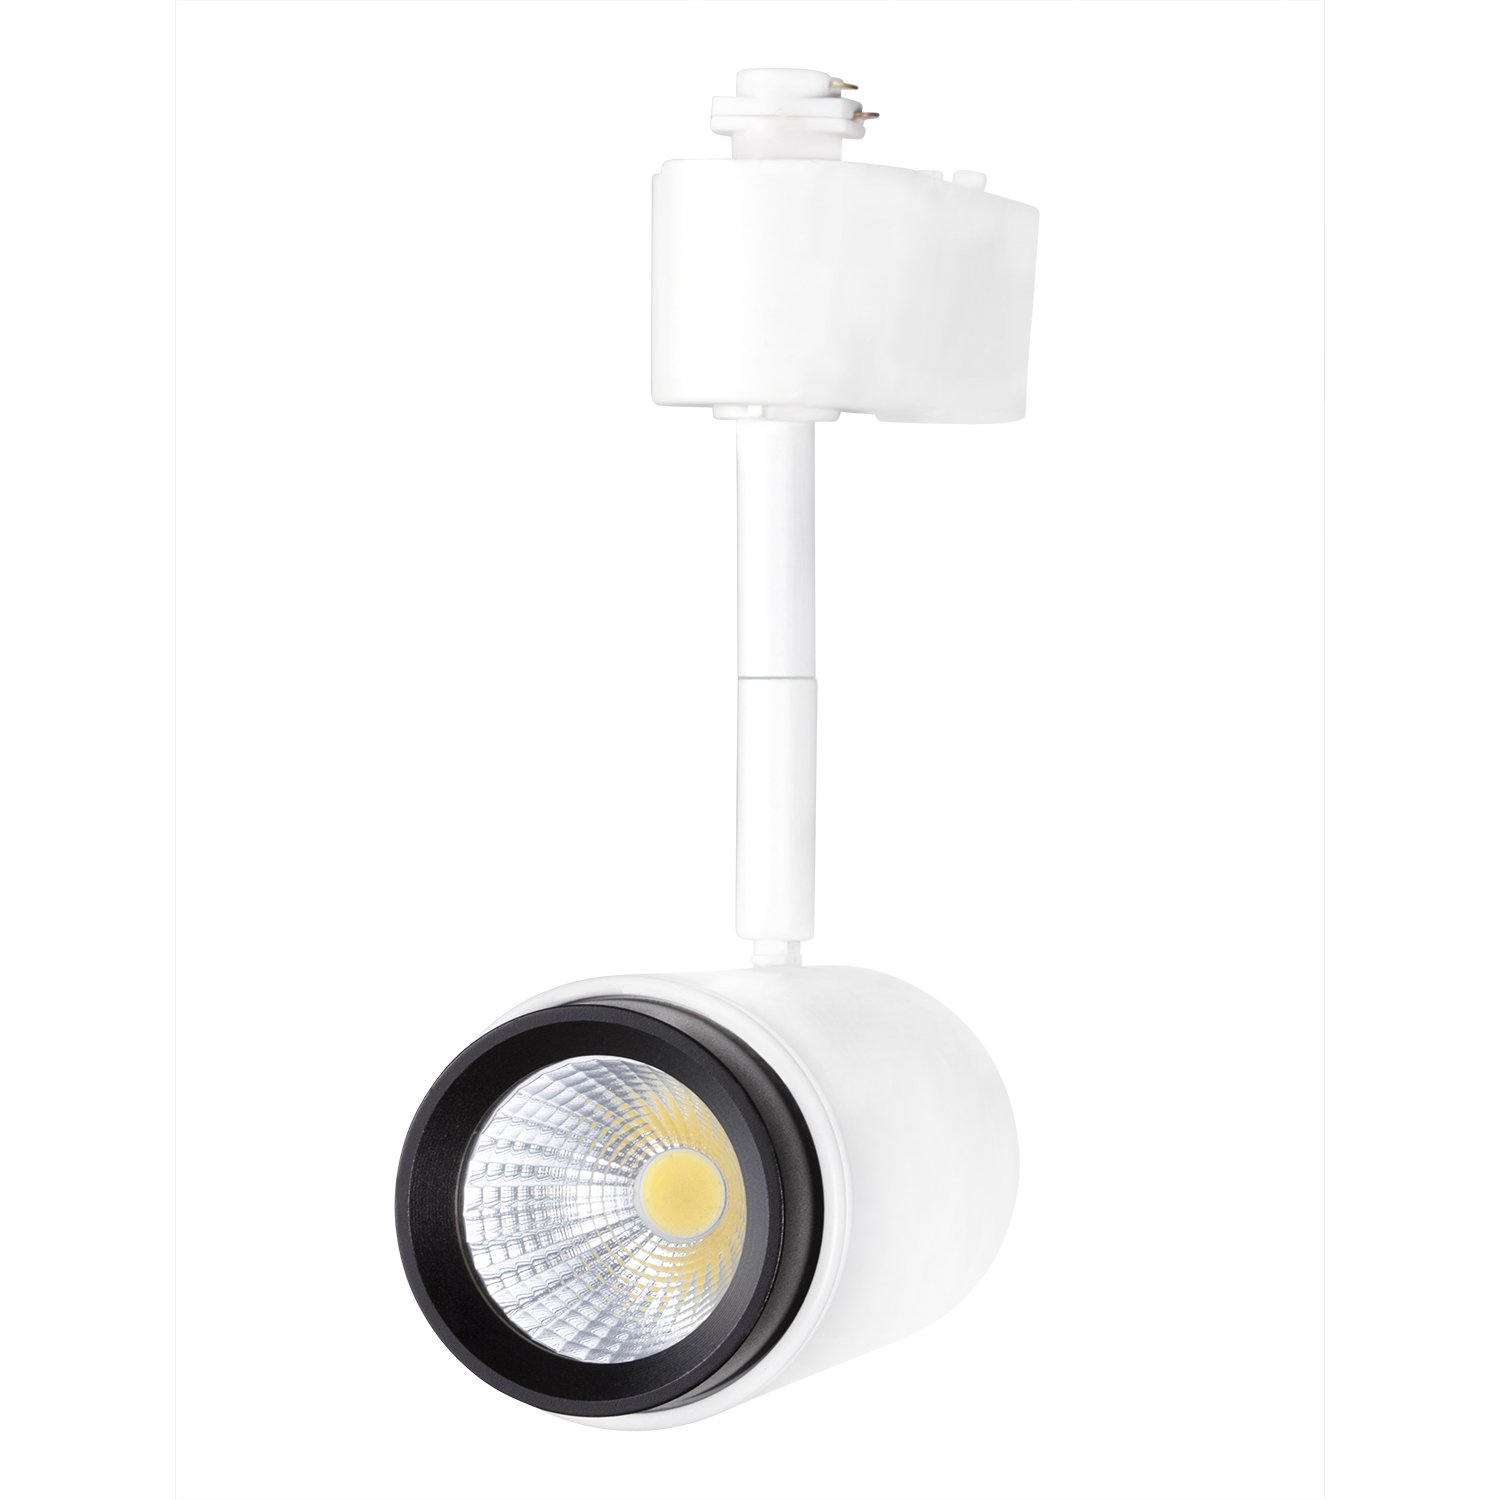 LED Track Head. 7Watt Integrated LED (50W Replacment) Warm White 3000K for Halo, Juno Track Systems